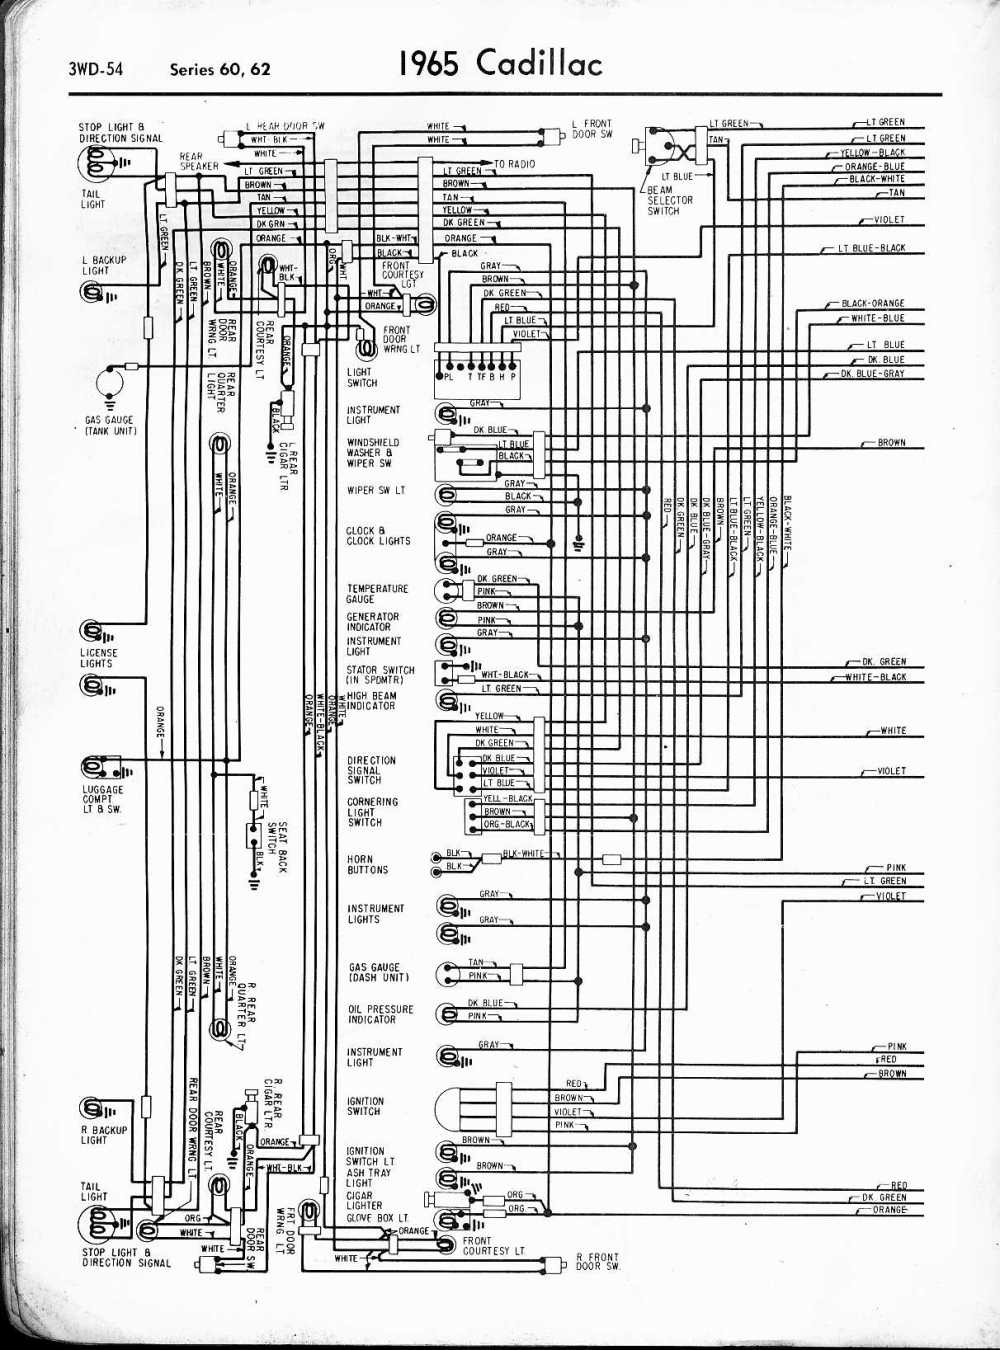 medium resolution of 1963 cadillac spark plug wire diagram wiring diagram sheetcadillac wiring diagrams 1957 1965 1963 cadillac spark